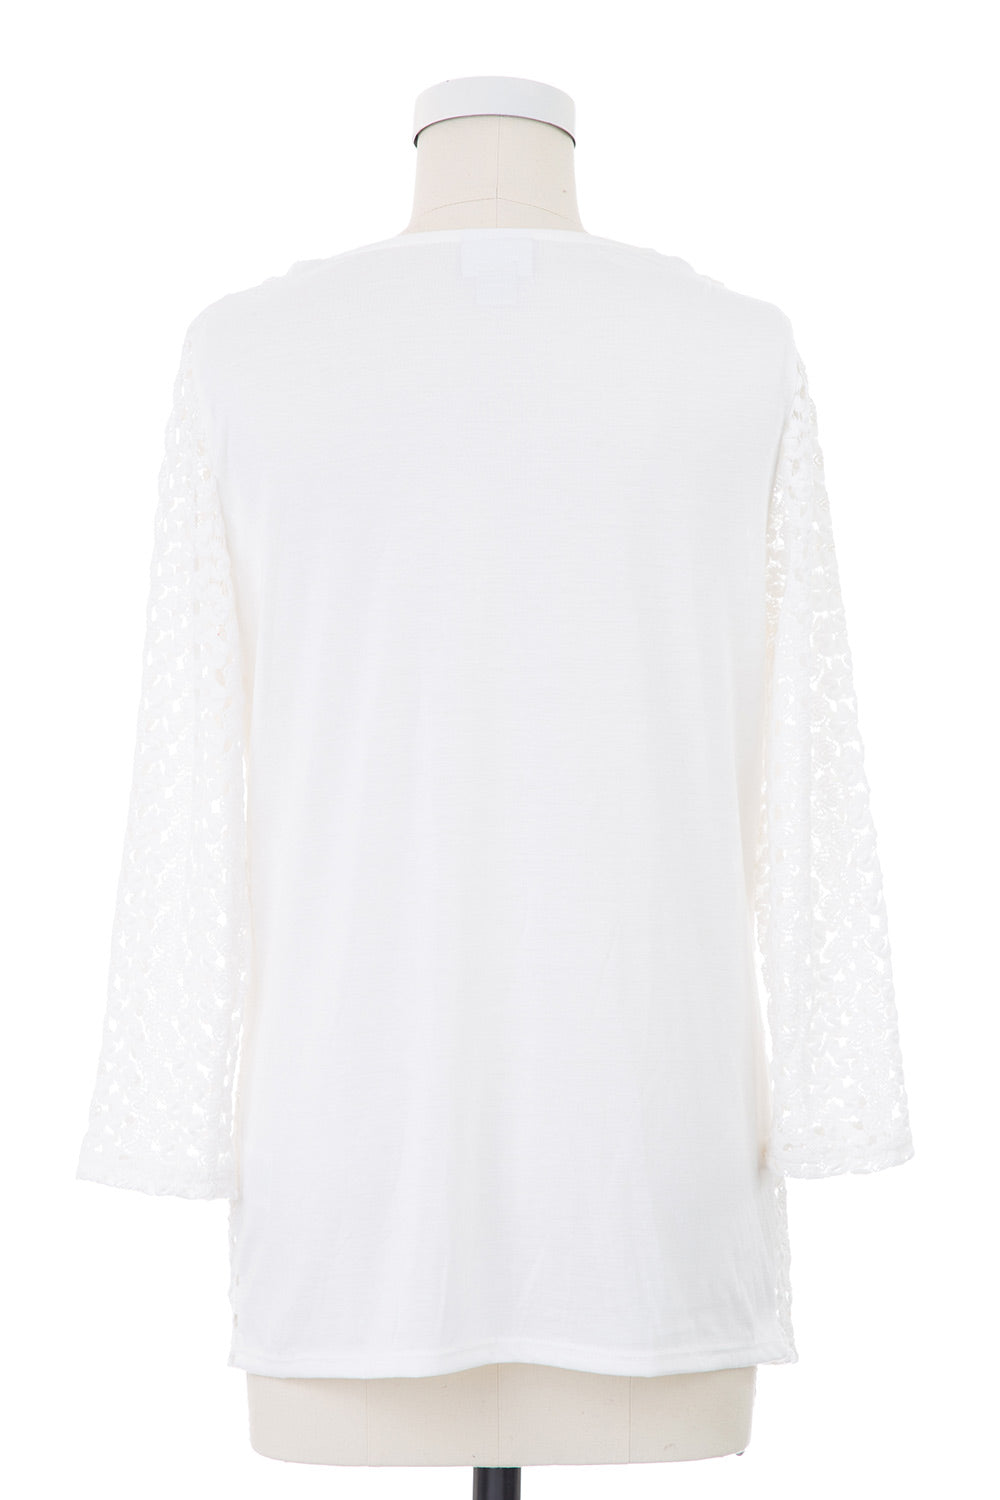 Type 1 Lively Lace Top